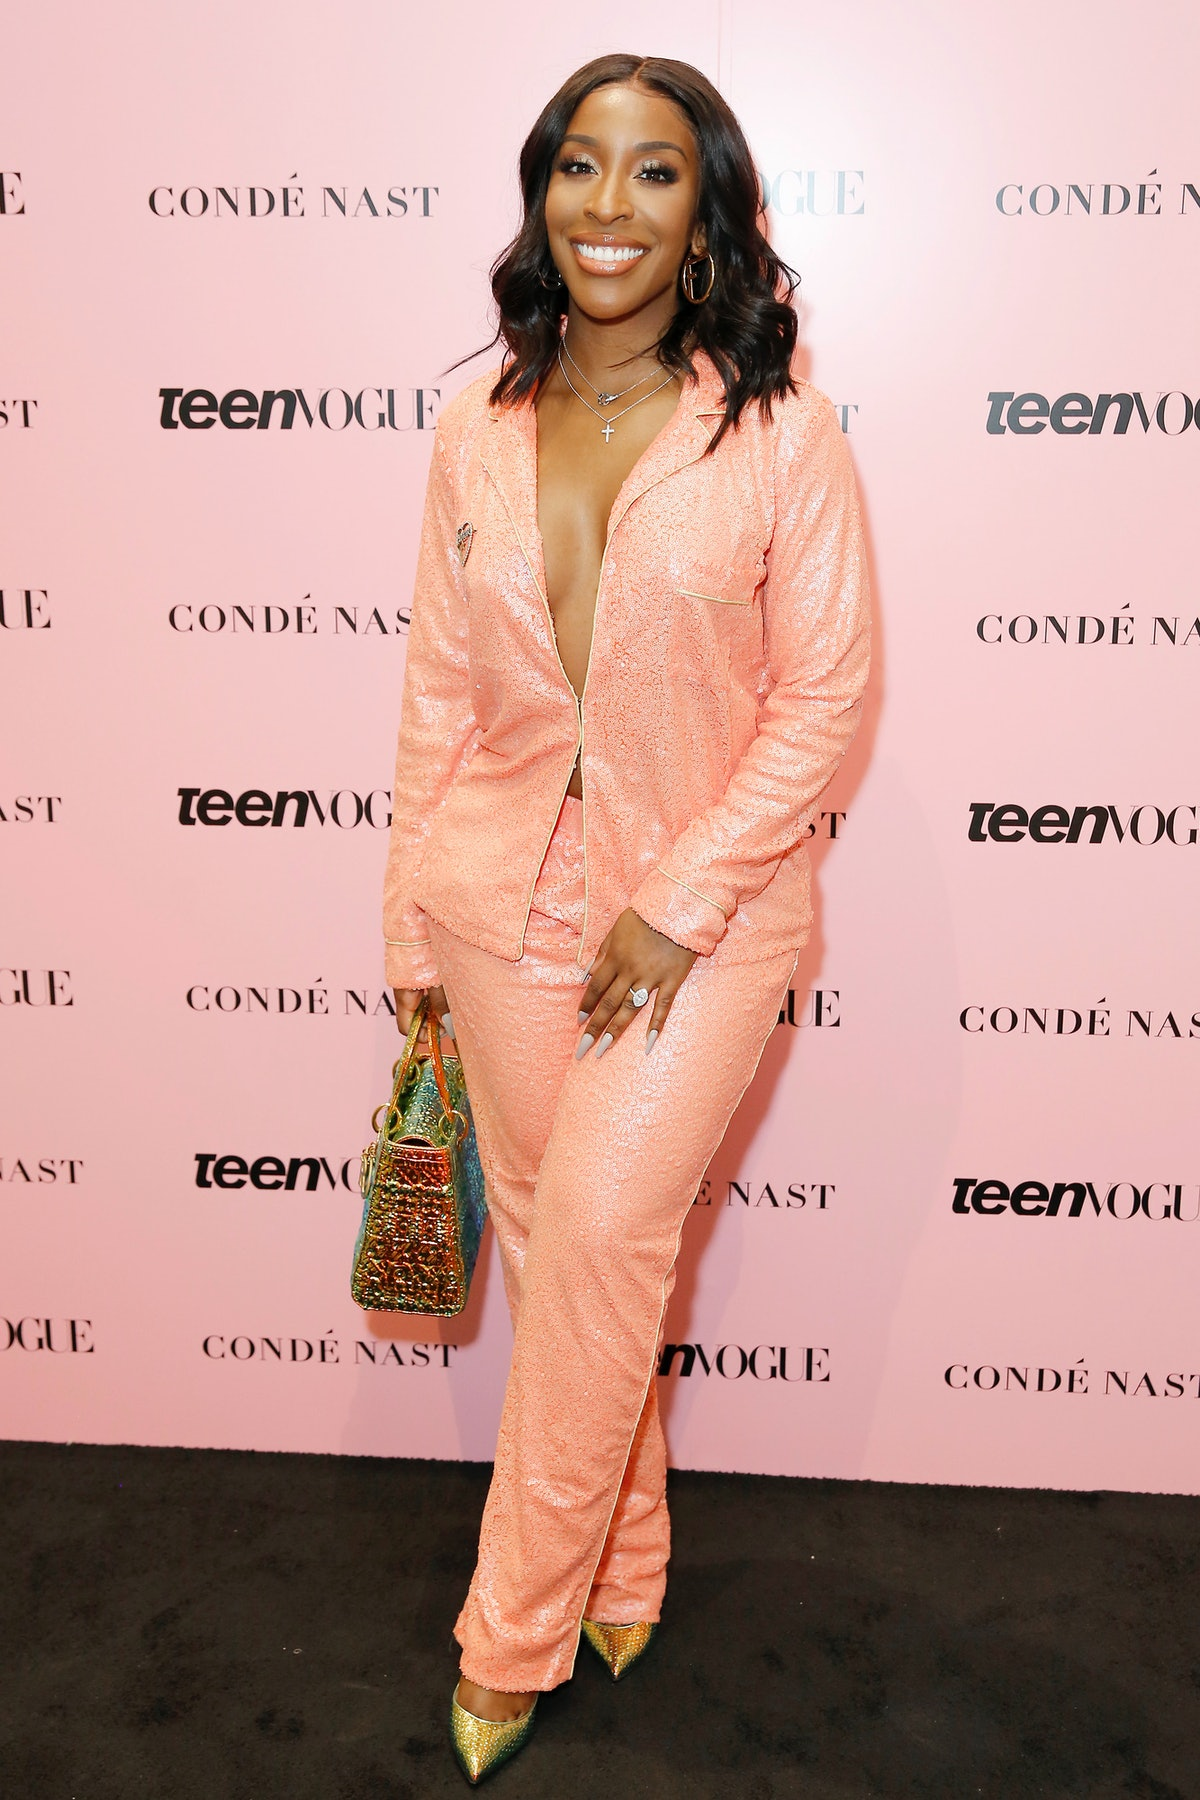 LOS ANGELES, CALIFORNIA - NOVEMBER 02: Jackie Aina attends the Teen Vogue Summit 2019 at Goya Studios on November 02, 2019 in Los Angeles, California. (Photo by Rachel Murray/Getty Images for Teen Vogue)